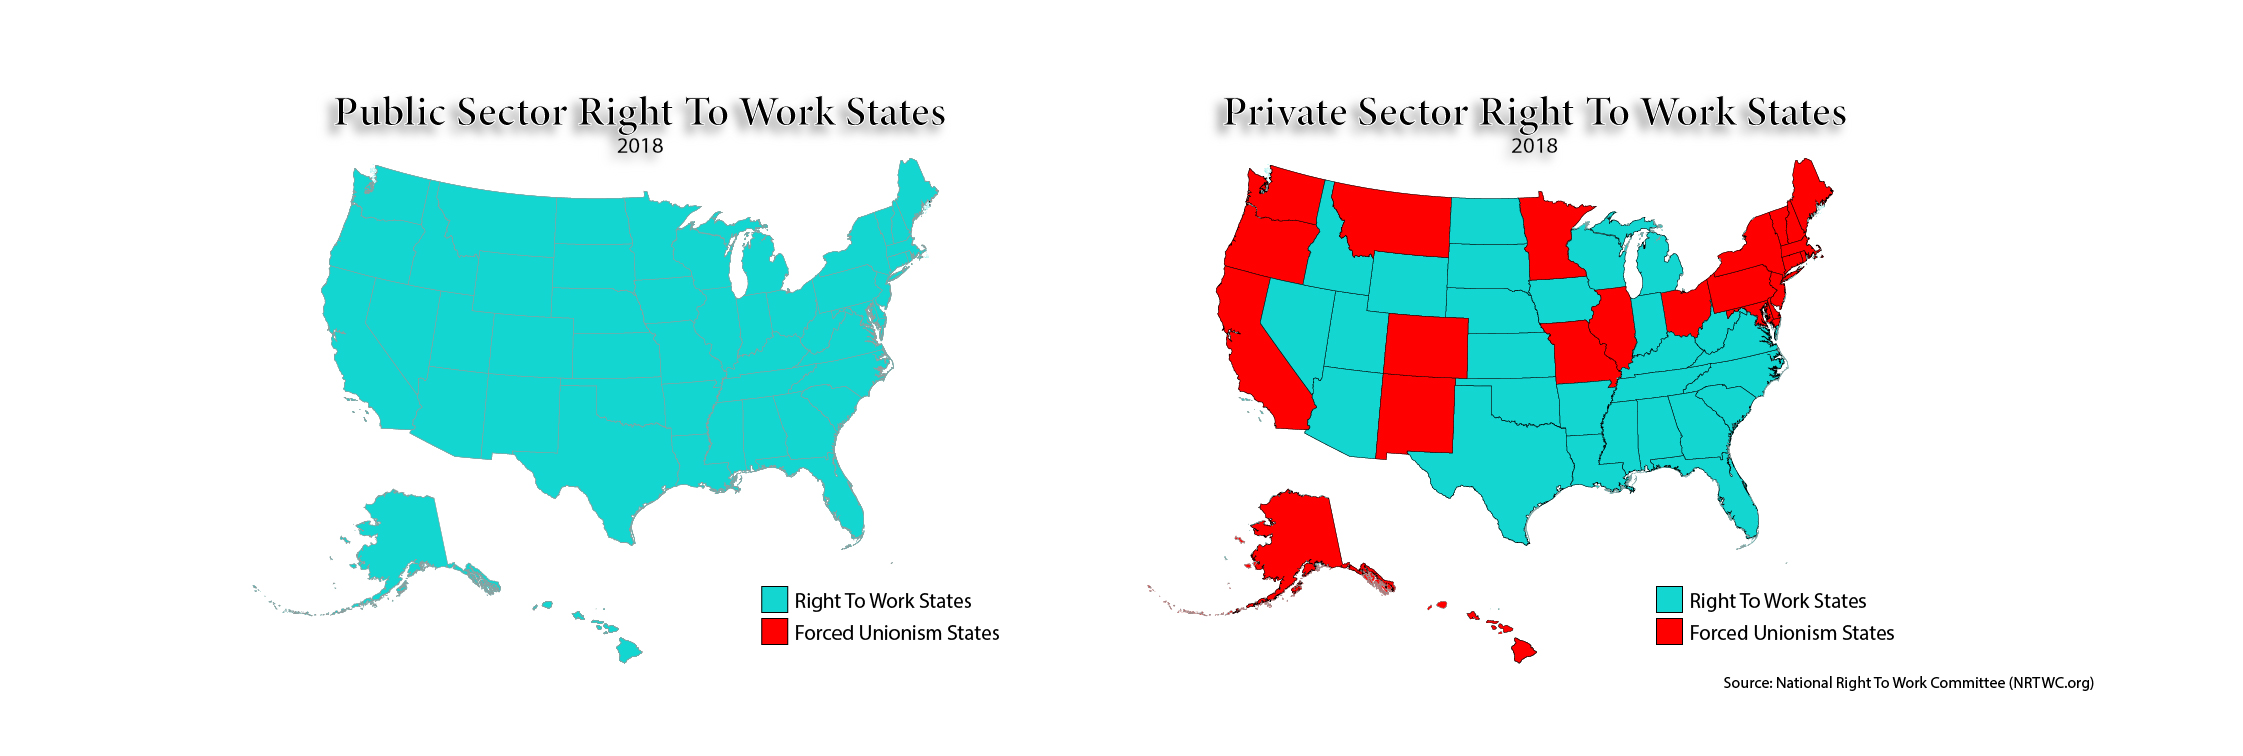 2018 Right To Work States